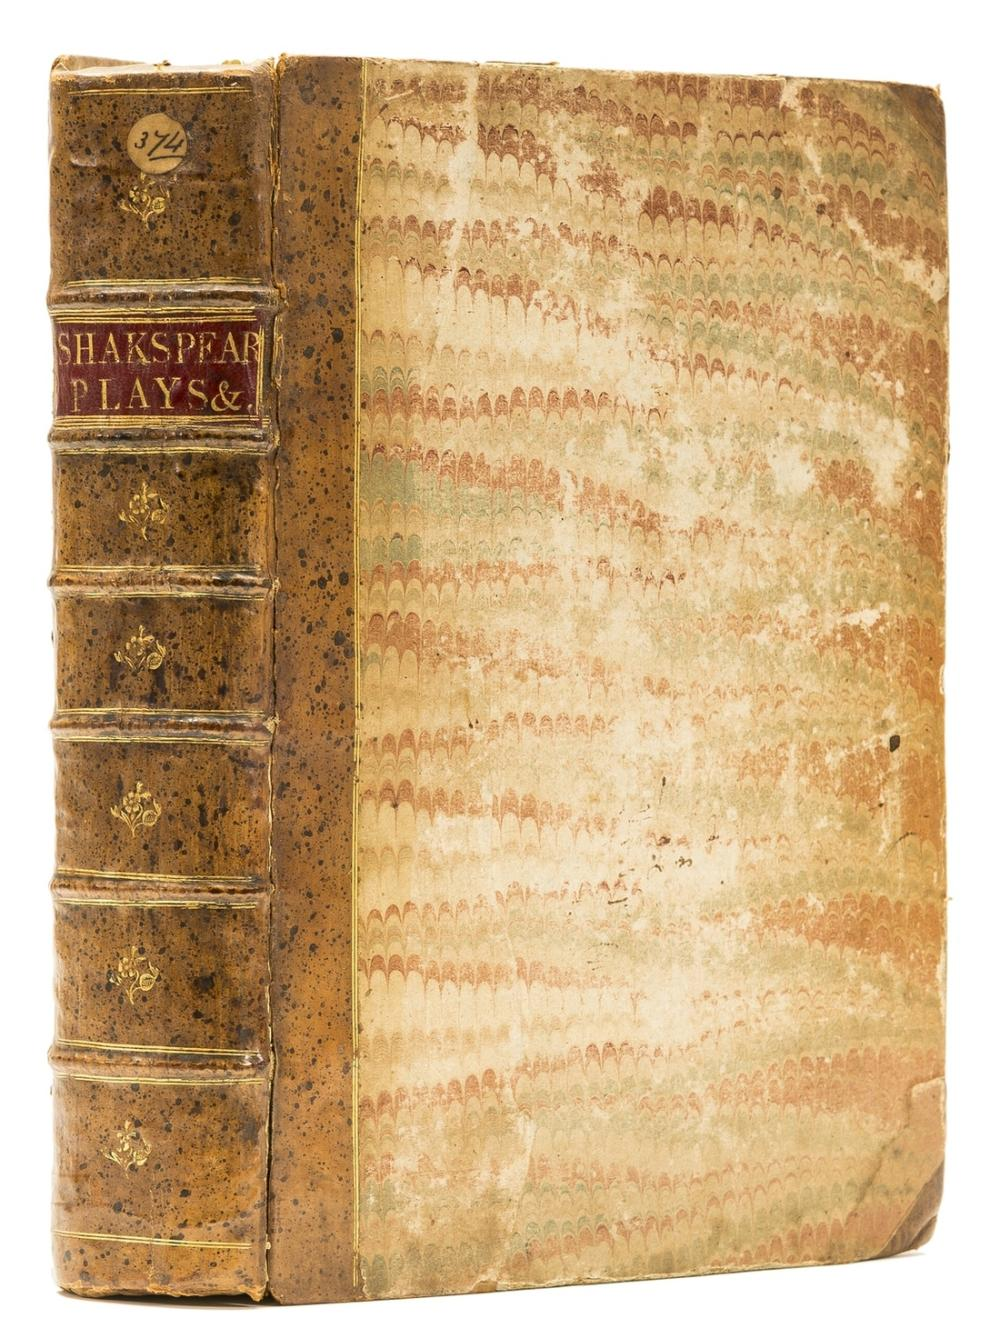 Shakespeare (William) [Comedies, Histories, and Tragedies], second folio edition, lacking portrait, title, preliminaries and 12ff. of text, [Thomas Cotes, for Iohn Smethwick...], [1632].